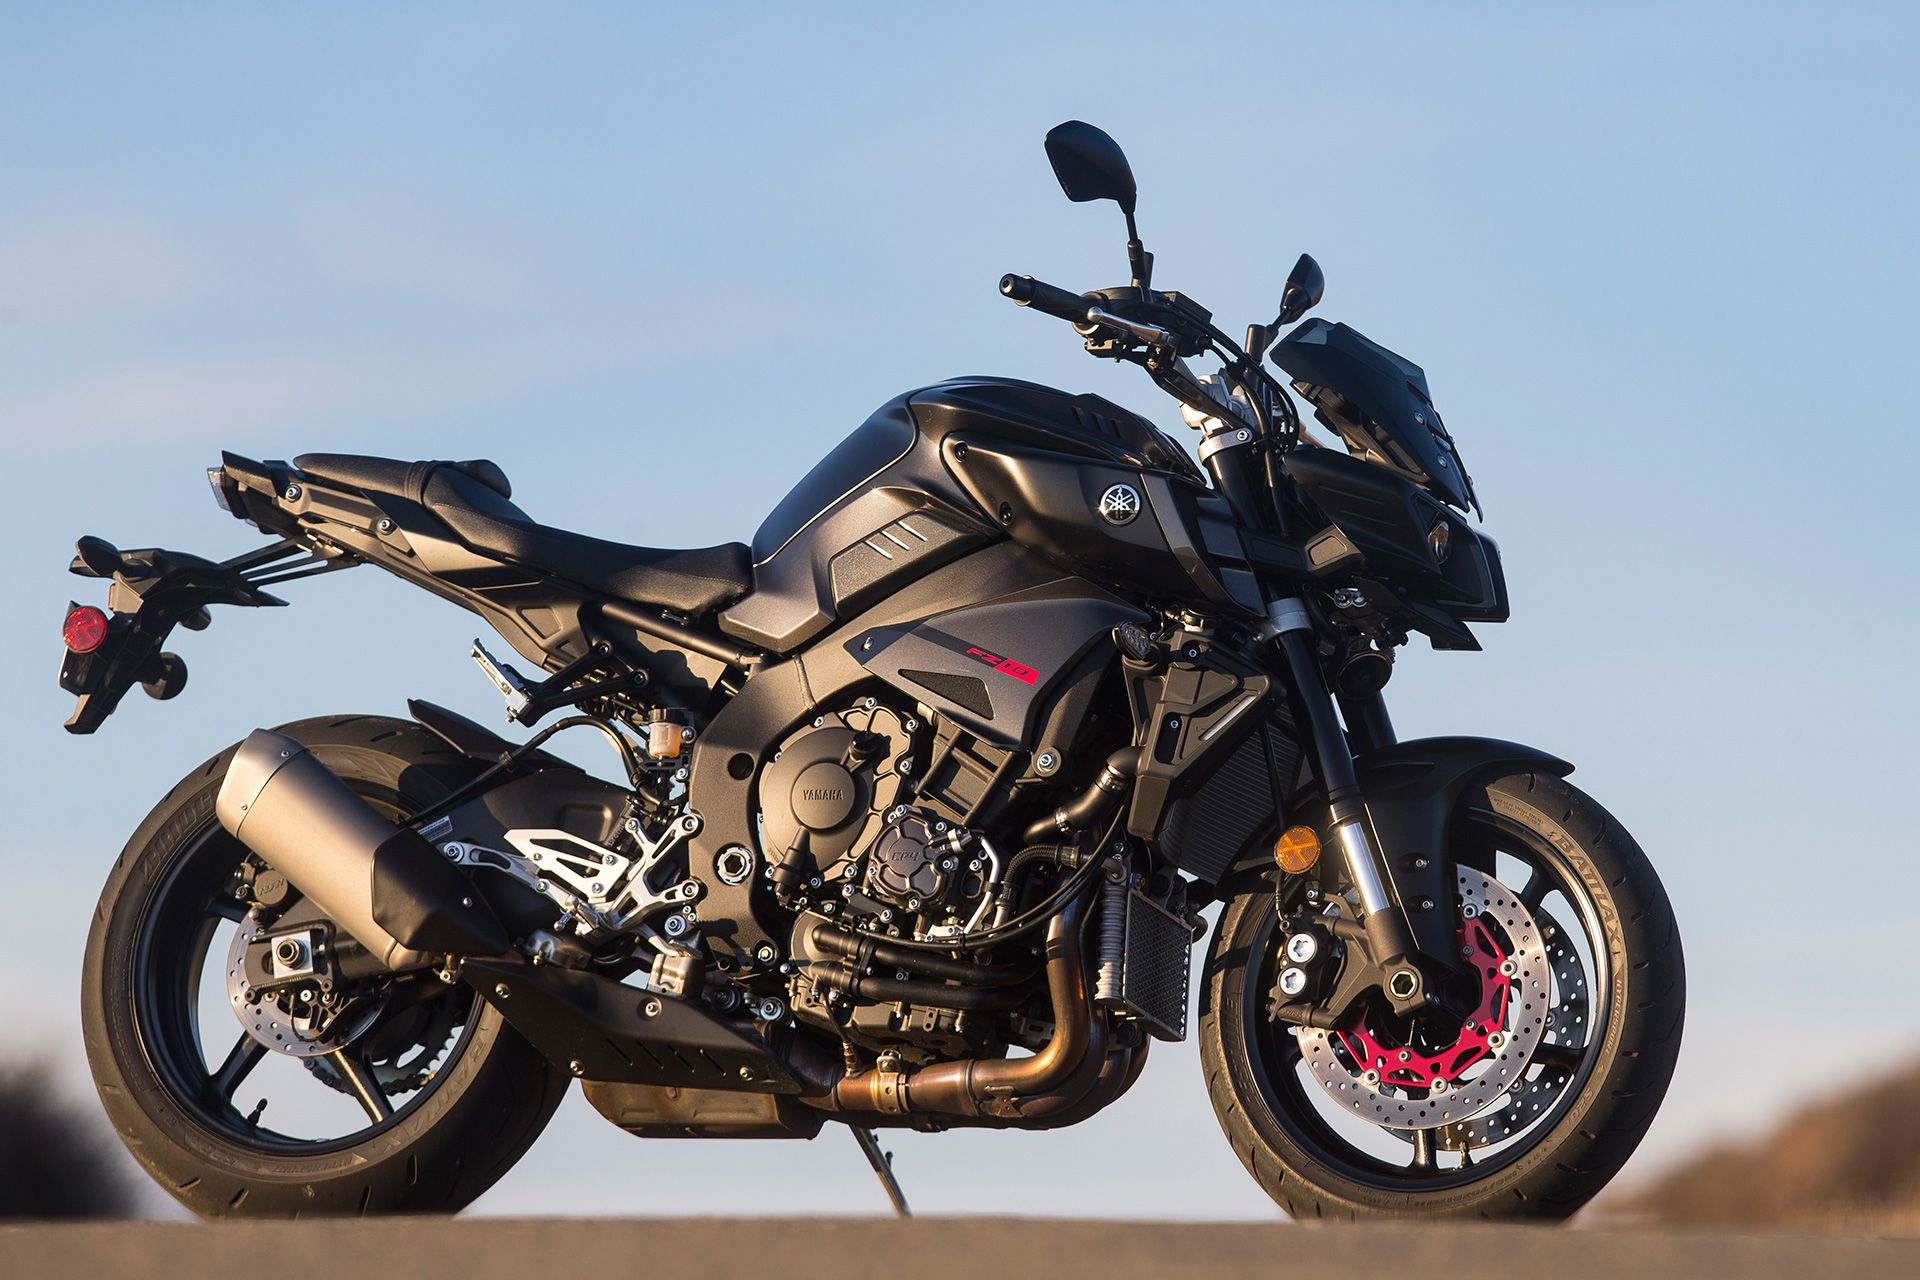 2017 Yamaha FZ-10 Naked Bike Road Test Review | Cycle World